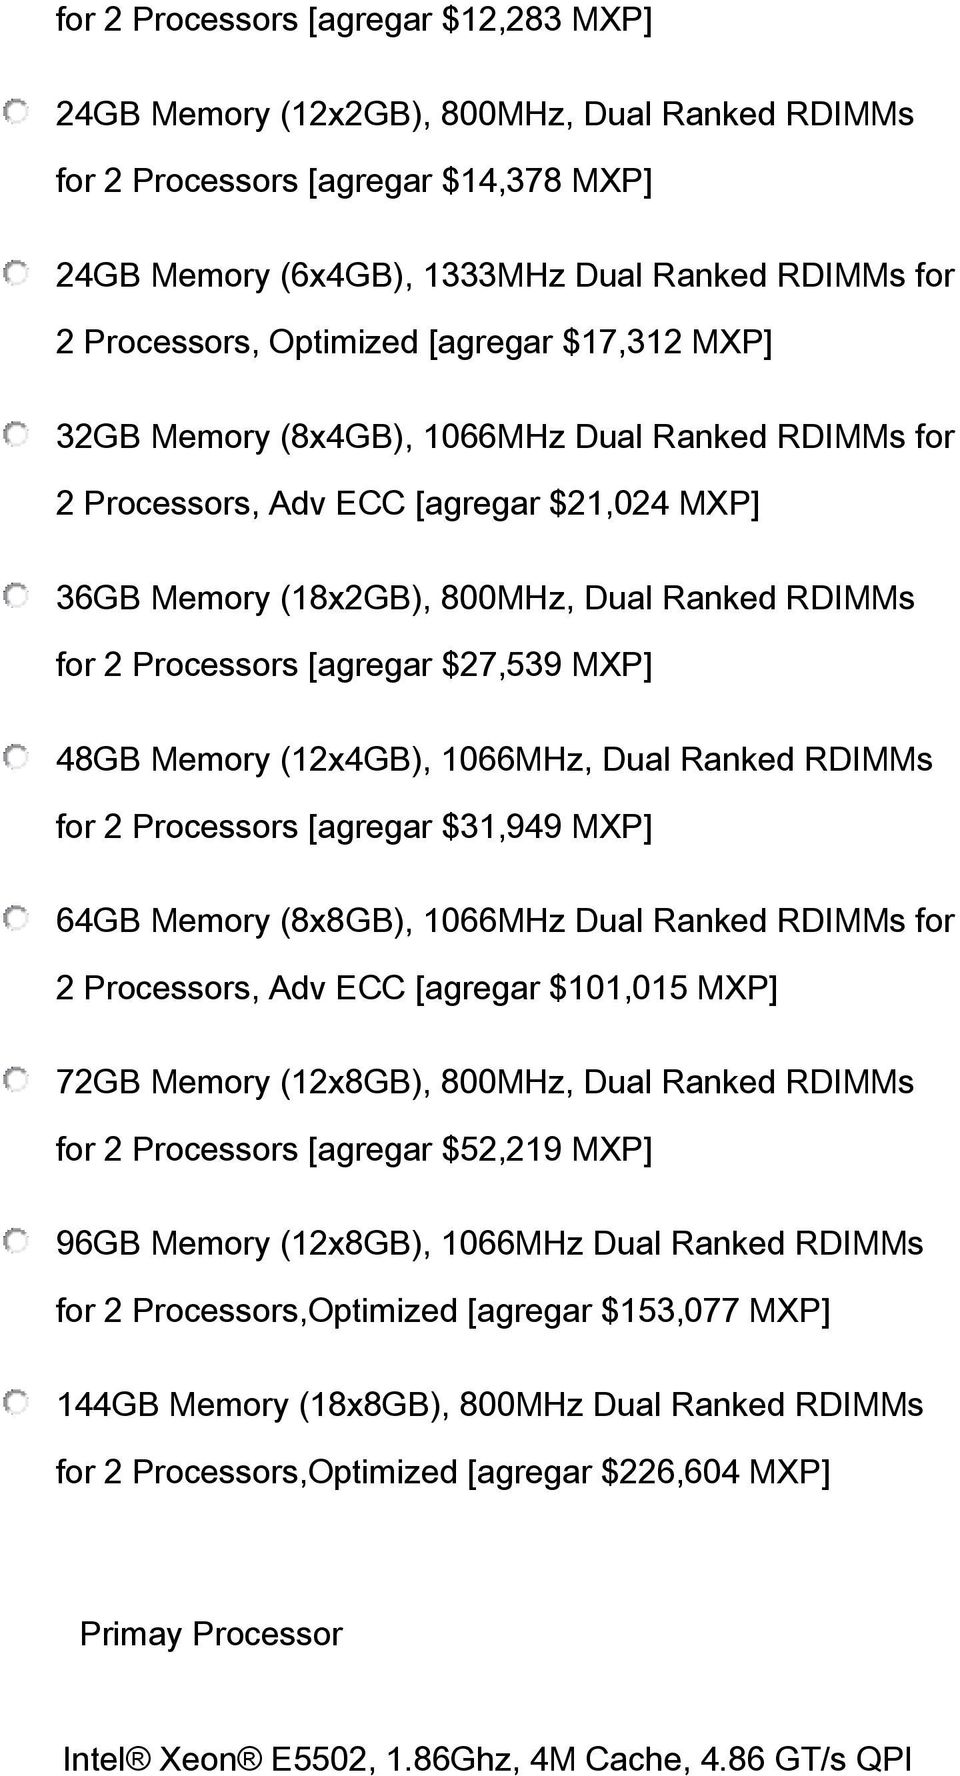 [agregar $27,539 MXP] 48GB Memory (12x4GB), 1066MHz, Dual Ranked RDIMMs for 2 Processors [agregar $31,949 MXP] 64GB Memory (8x8GB), 1066MHz Dual Ranked RDIMMs for 2 Processors, Adv ECC [agregar